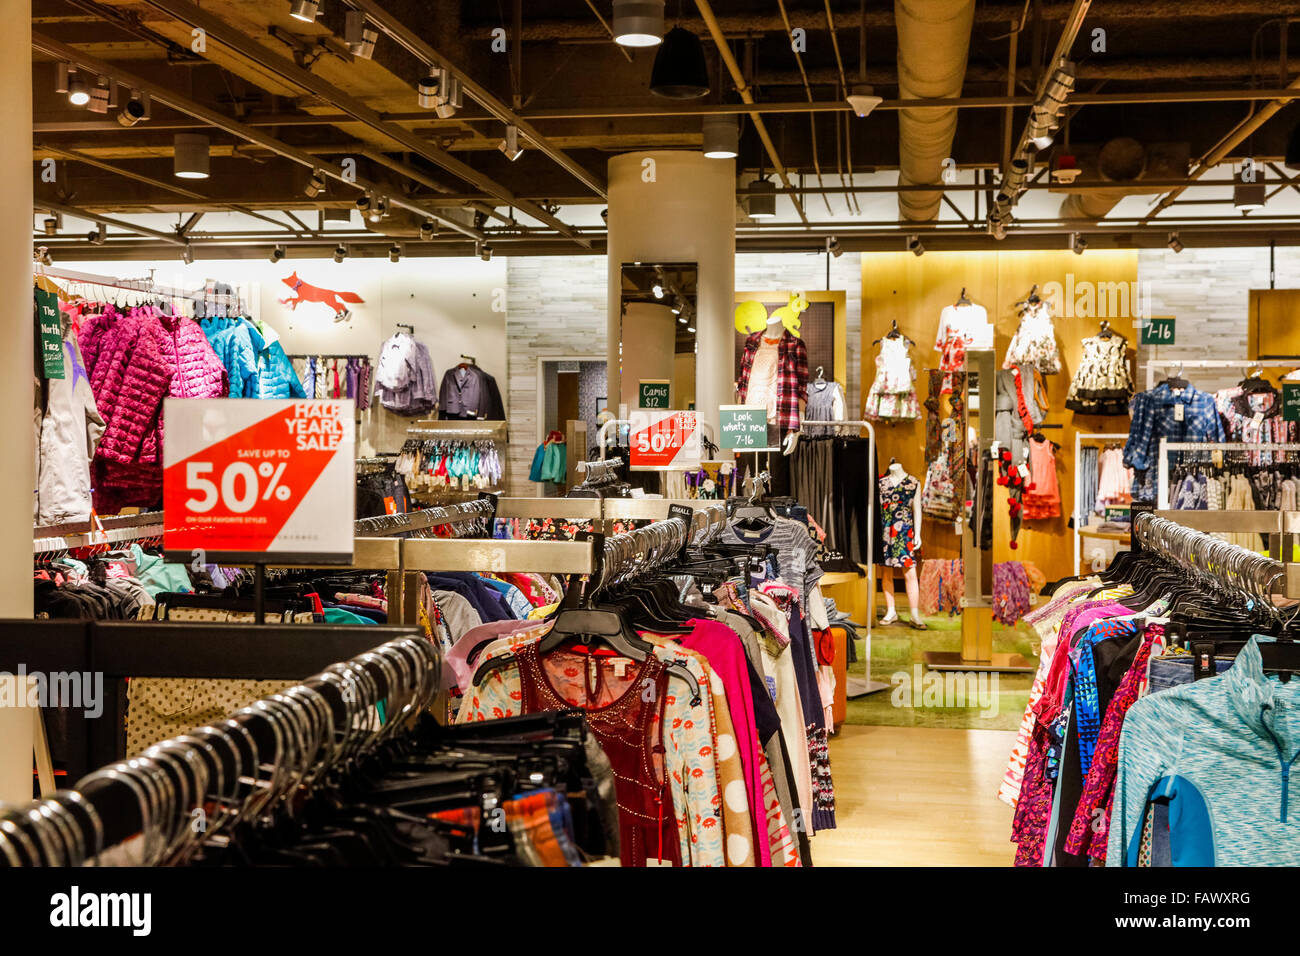 clothes on half yearly sale, Nordstrom department store, downtown Seattle, Washington State, USA - Stock Image